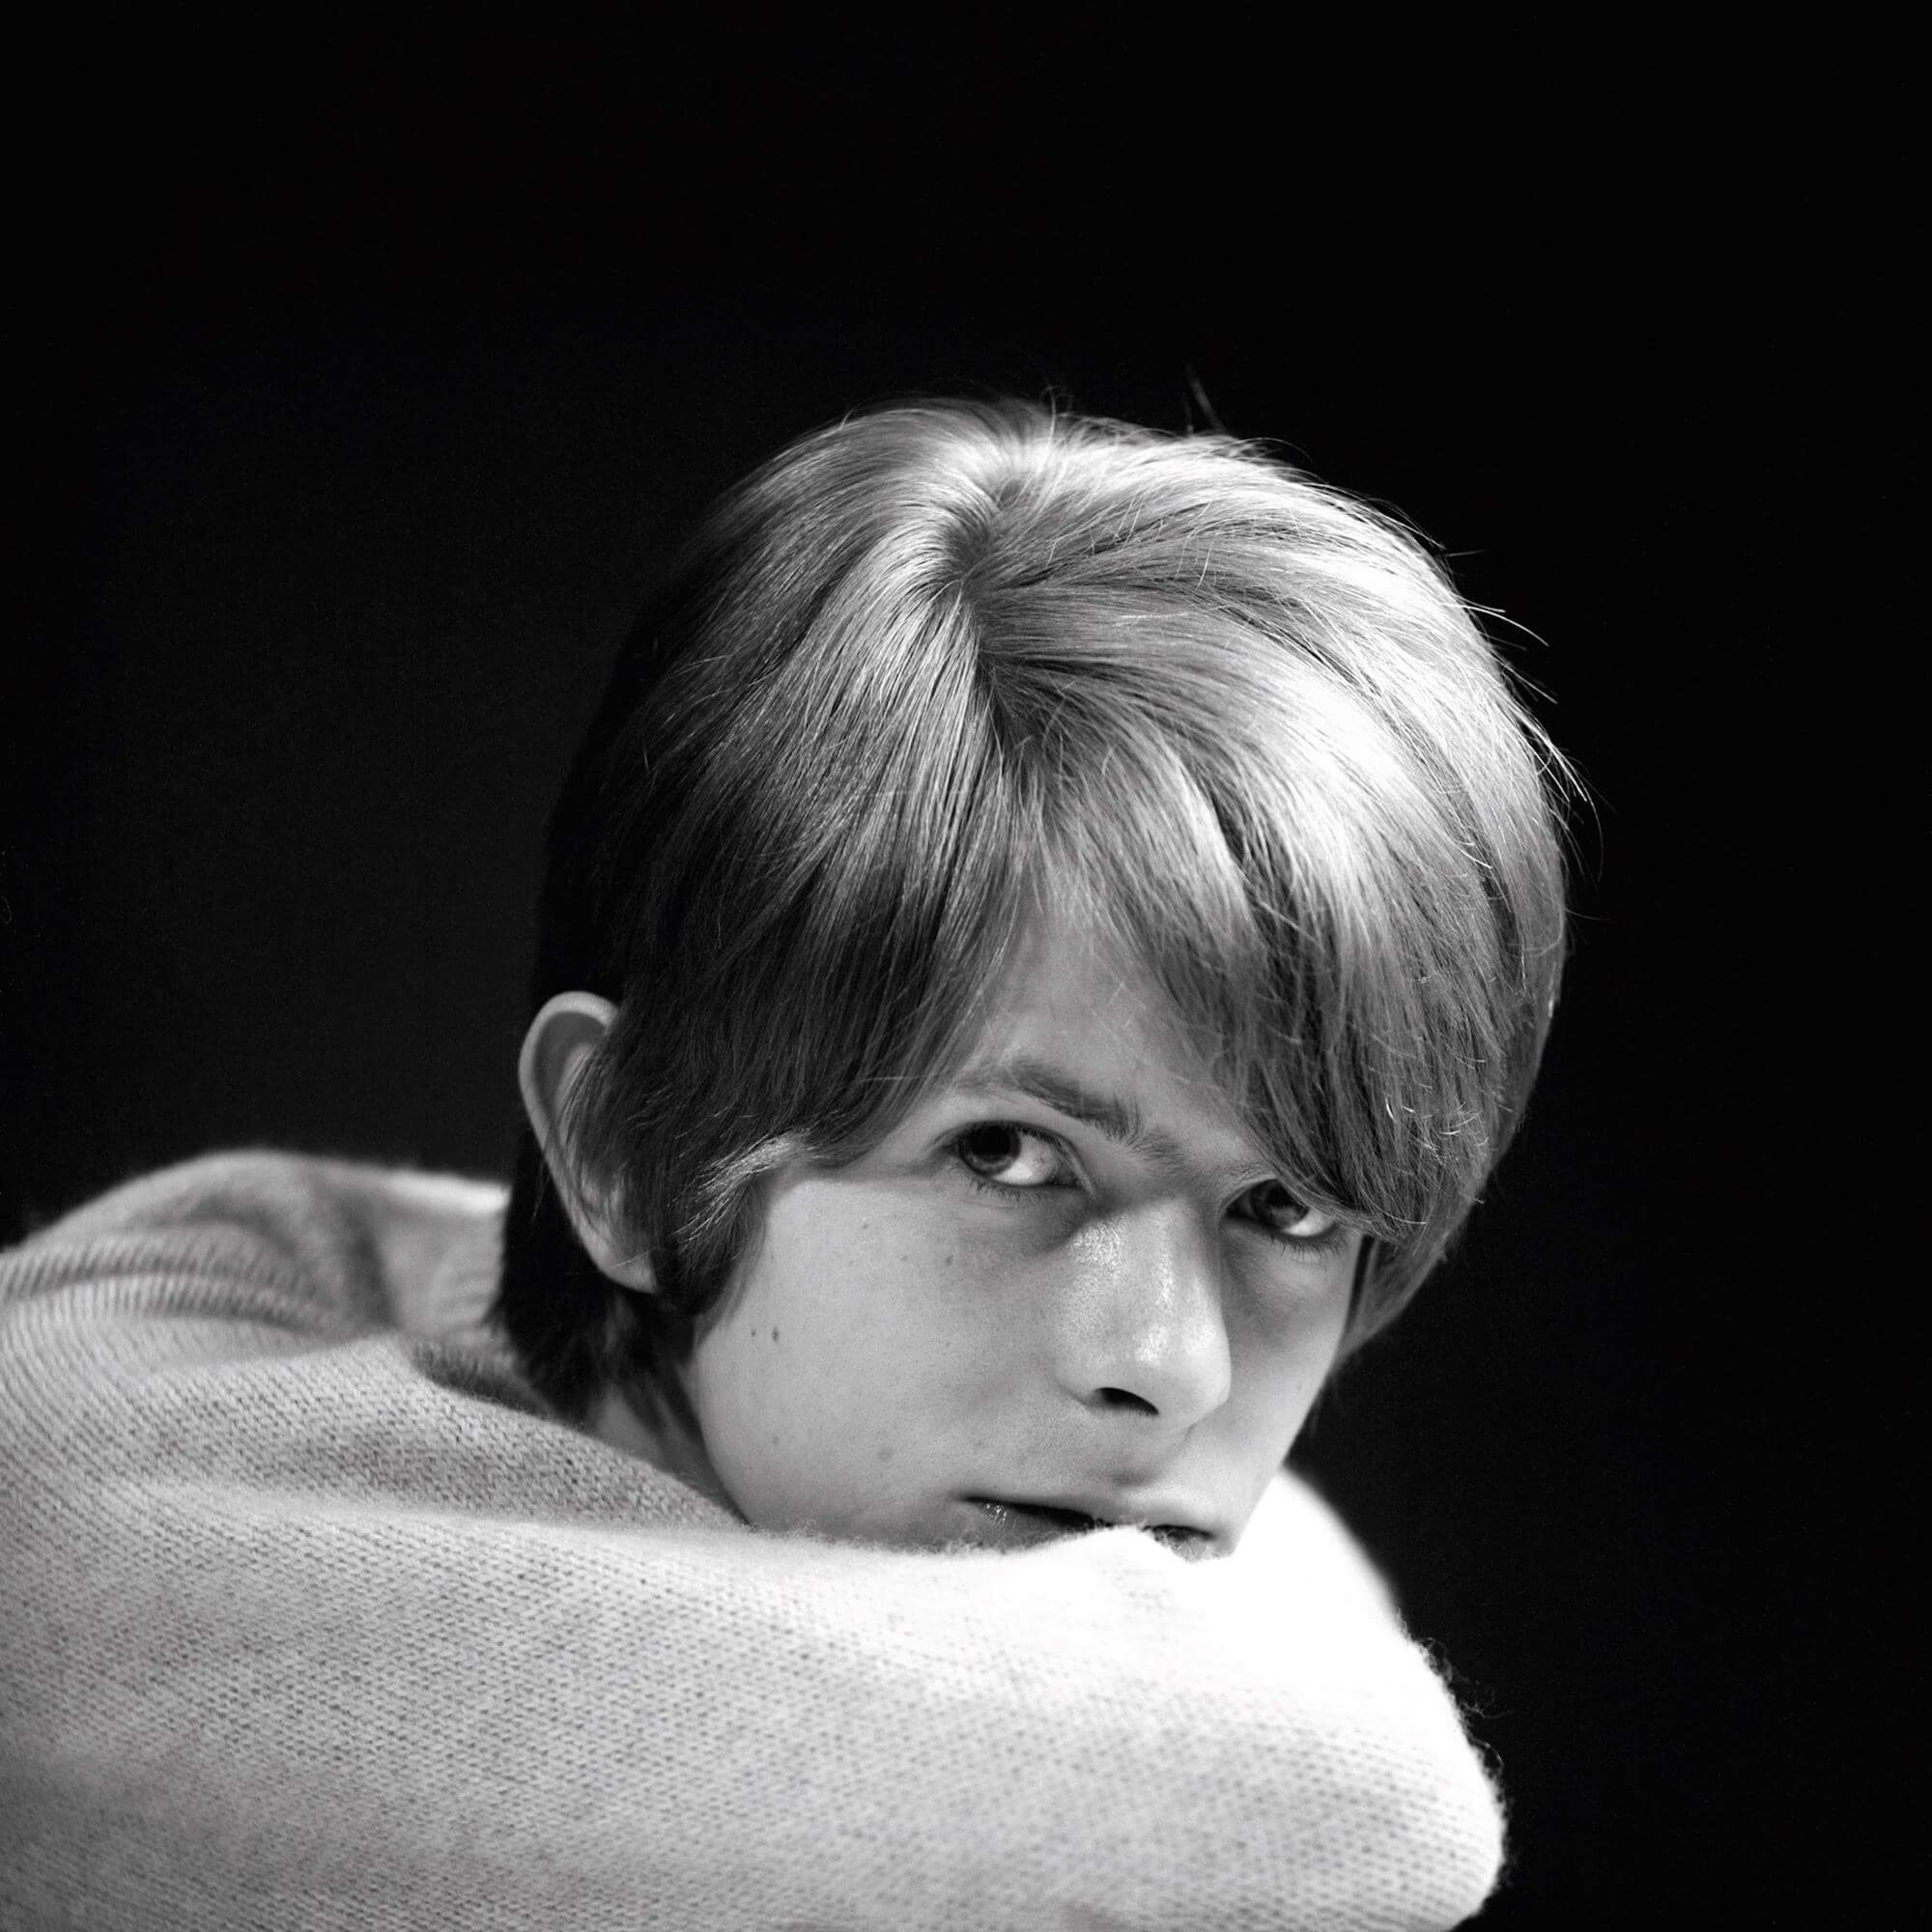 20 year old david bowie fy 6